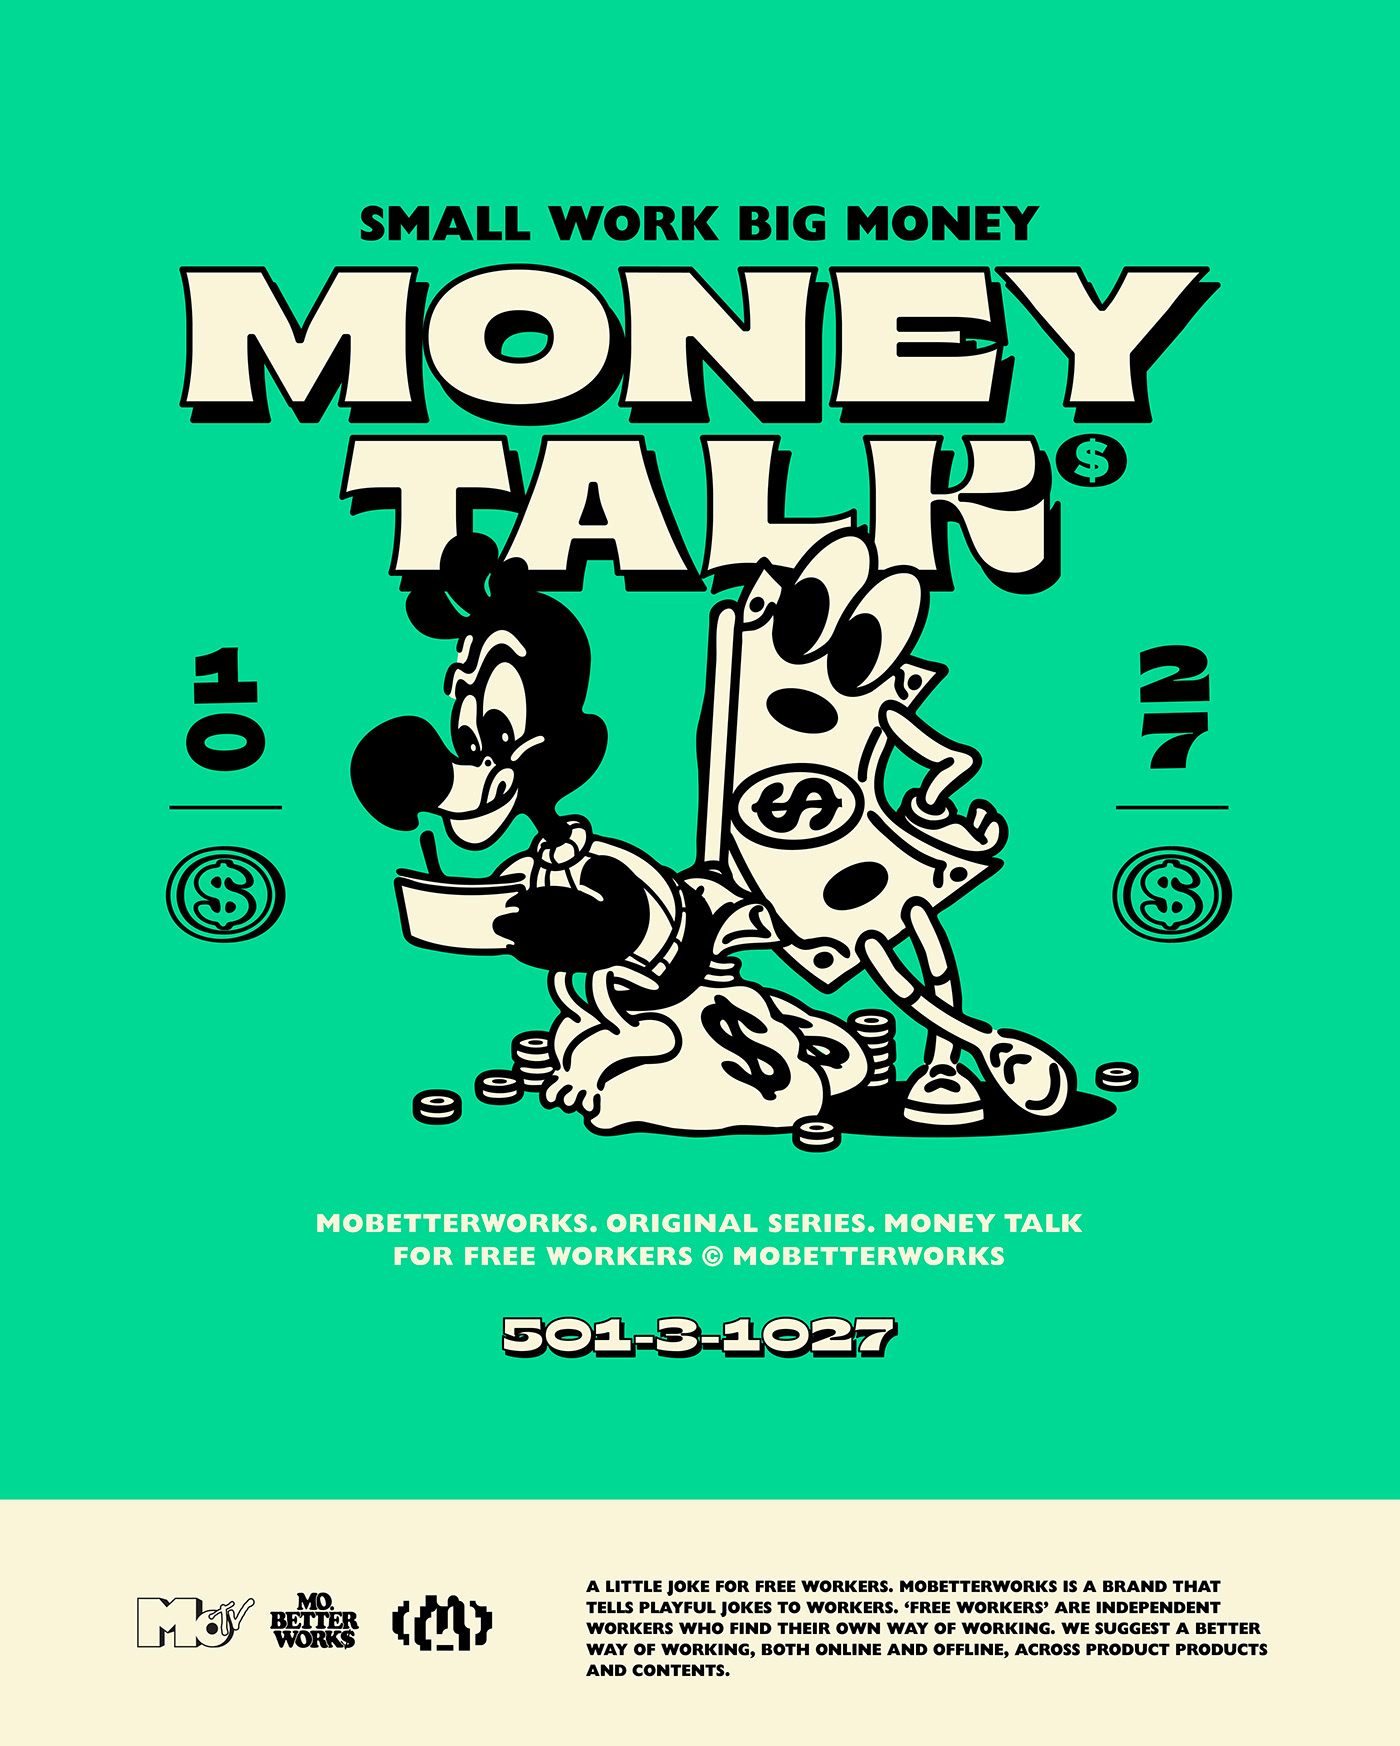 Thumbnail for Money Talk's Branding Will Make You Green With Envy